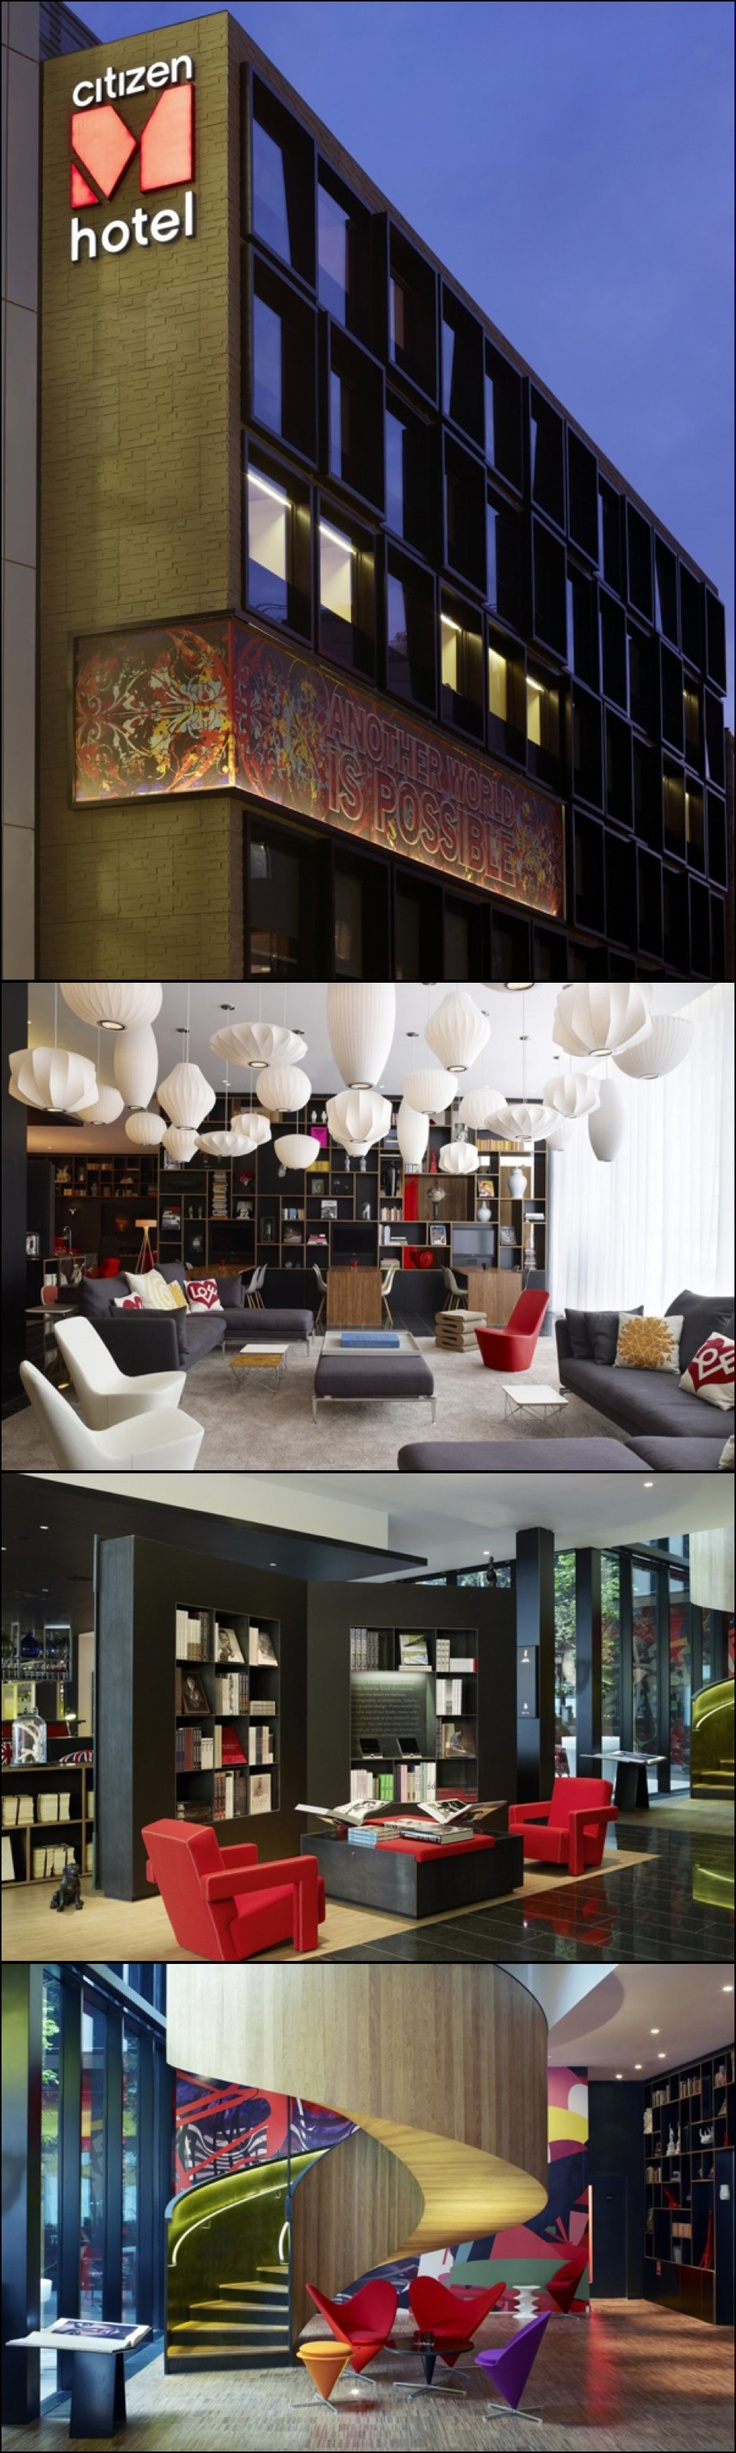 Best Standard NYC BABY Images On Pinterest Nyc Architects - Citizenm london bankside by concrete architectural associates